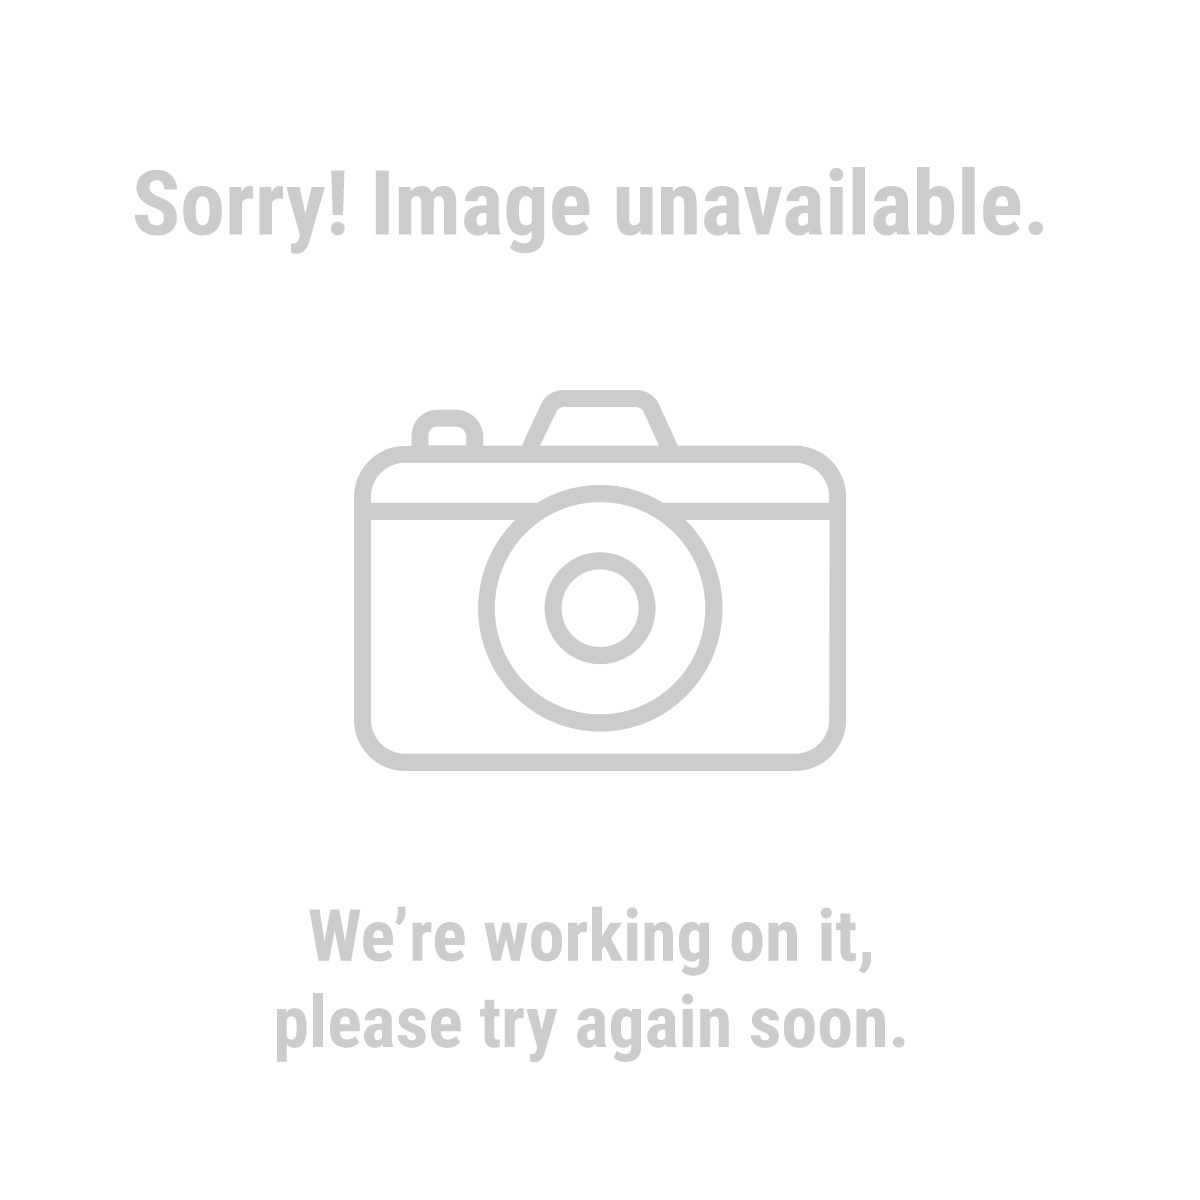 Western Safety 90913 Coated Rubber Grip Gloves, X-Large